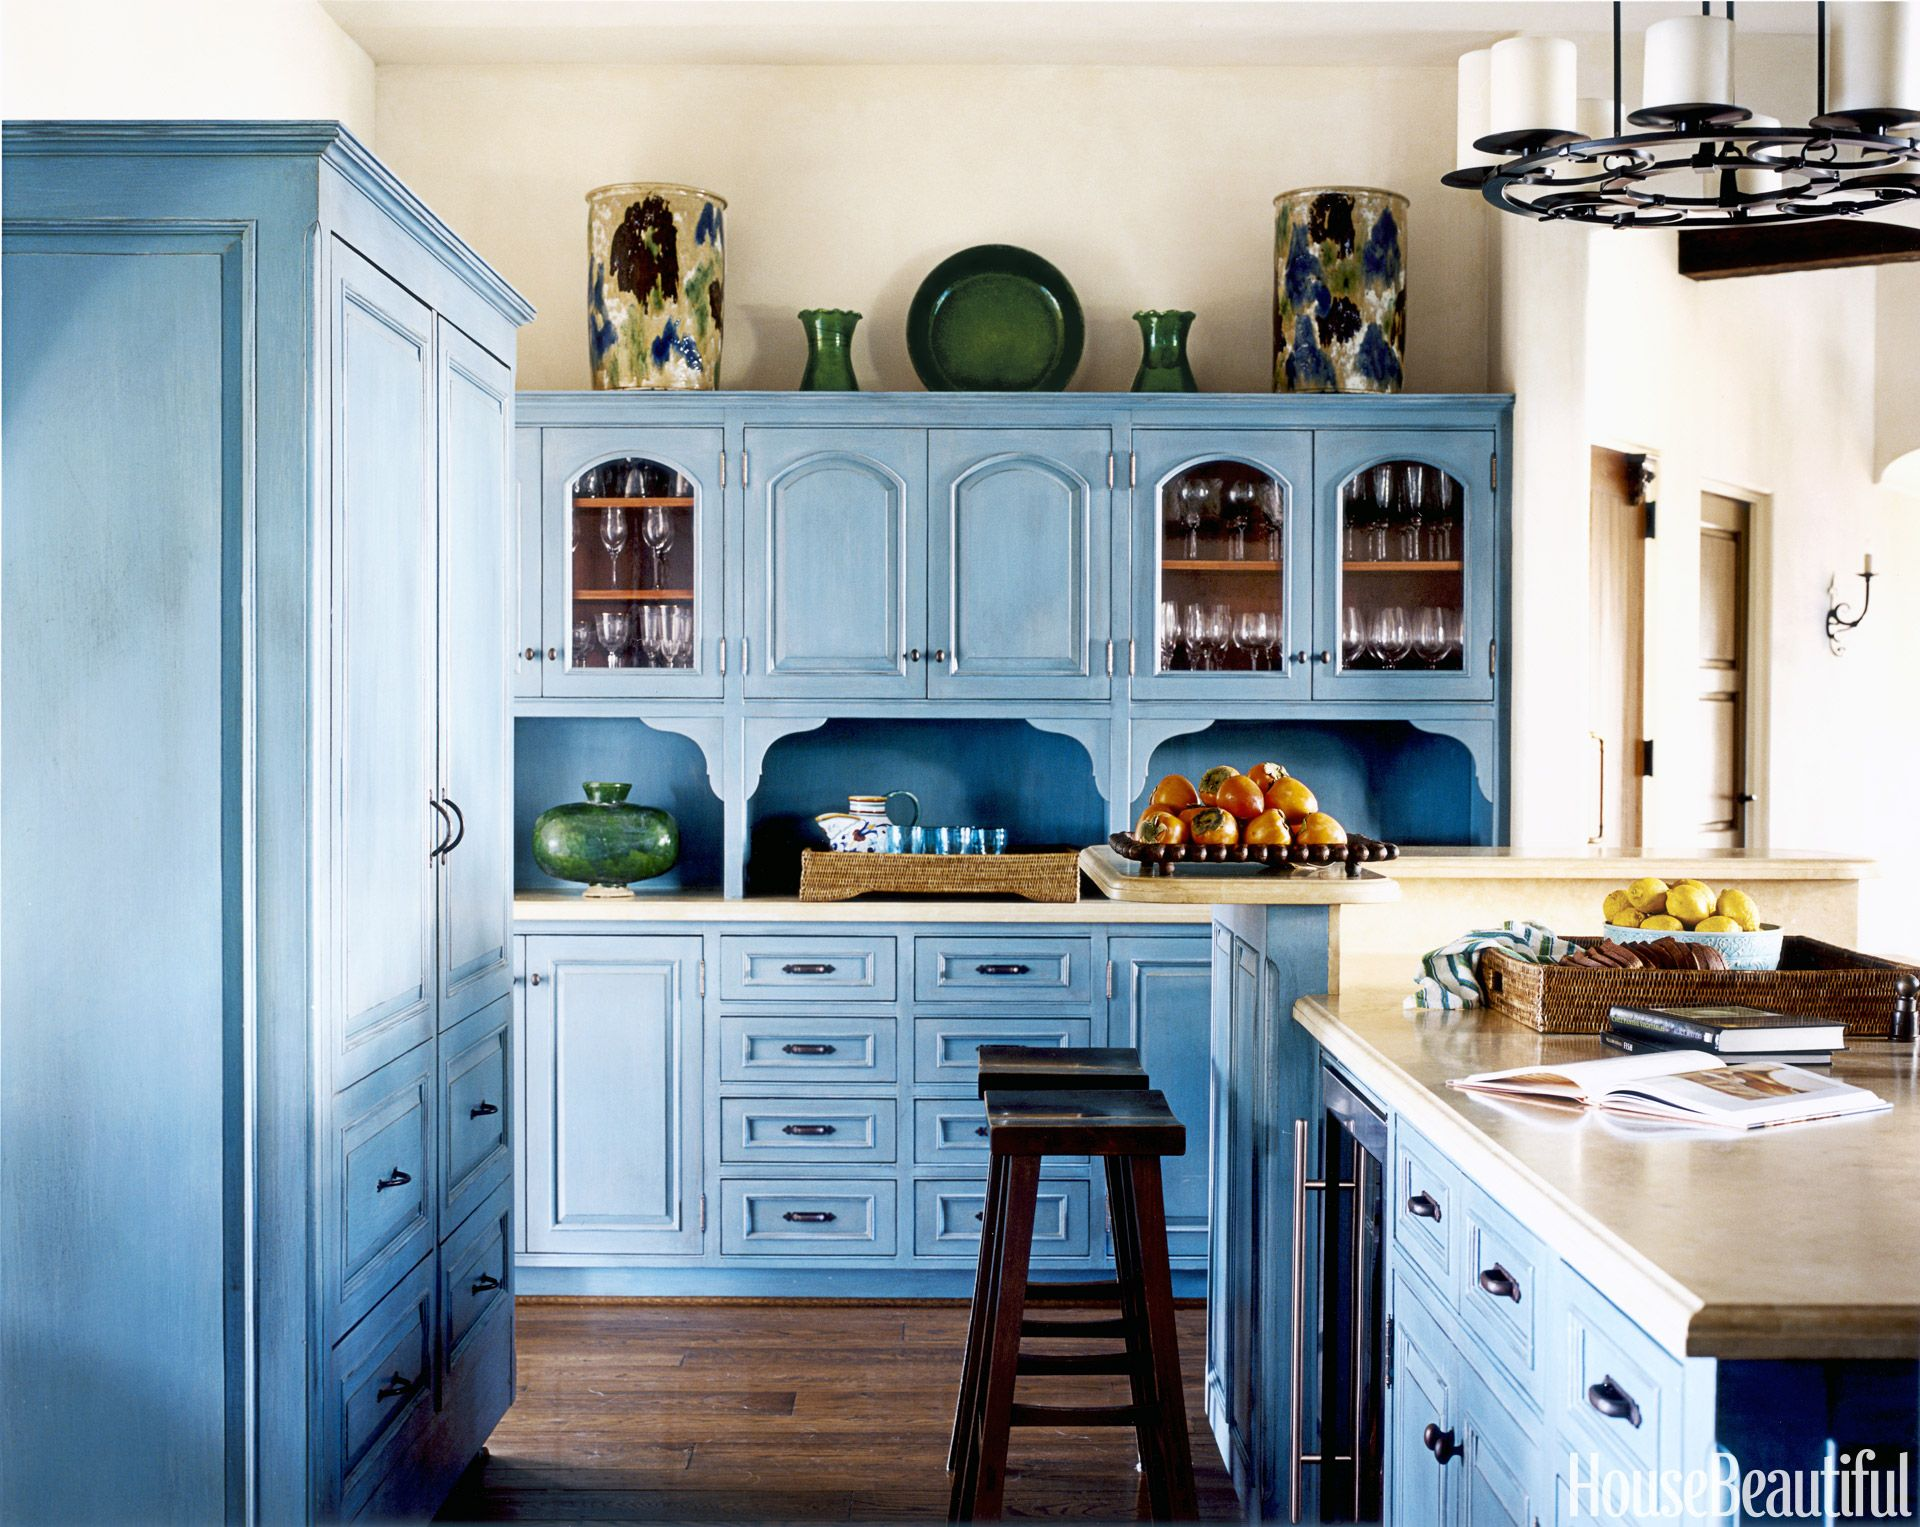 55 Inspiring Ideas to Update Your Kitchen | Pinterest | Kitchens ...